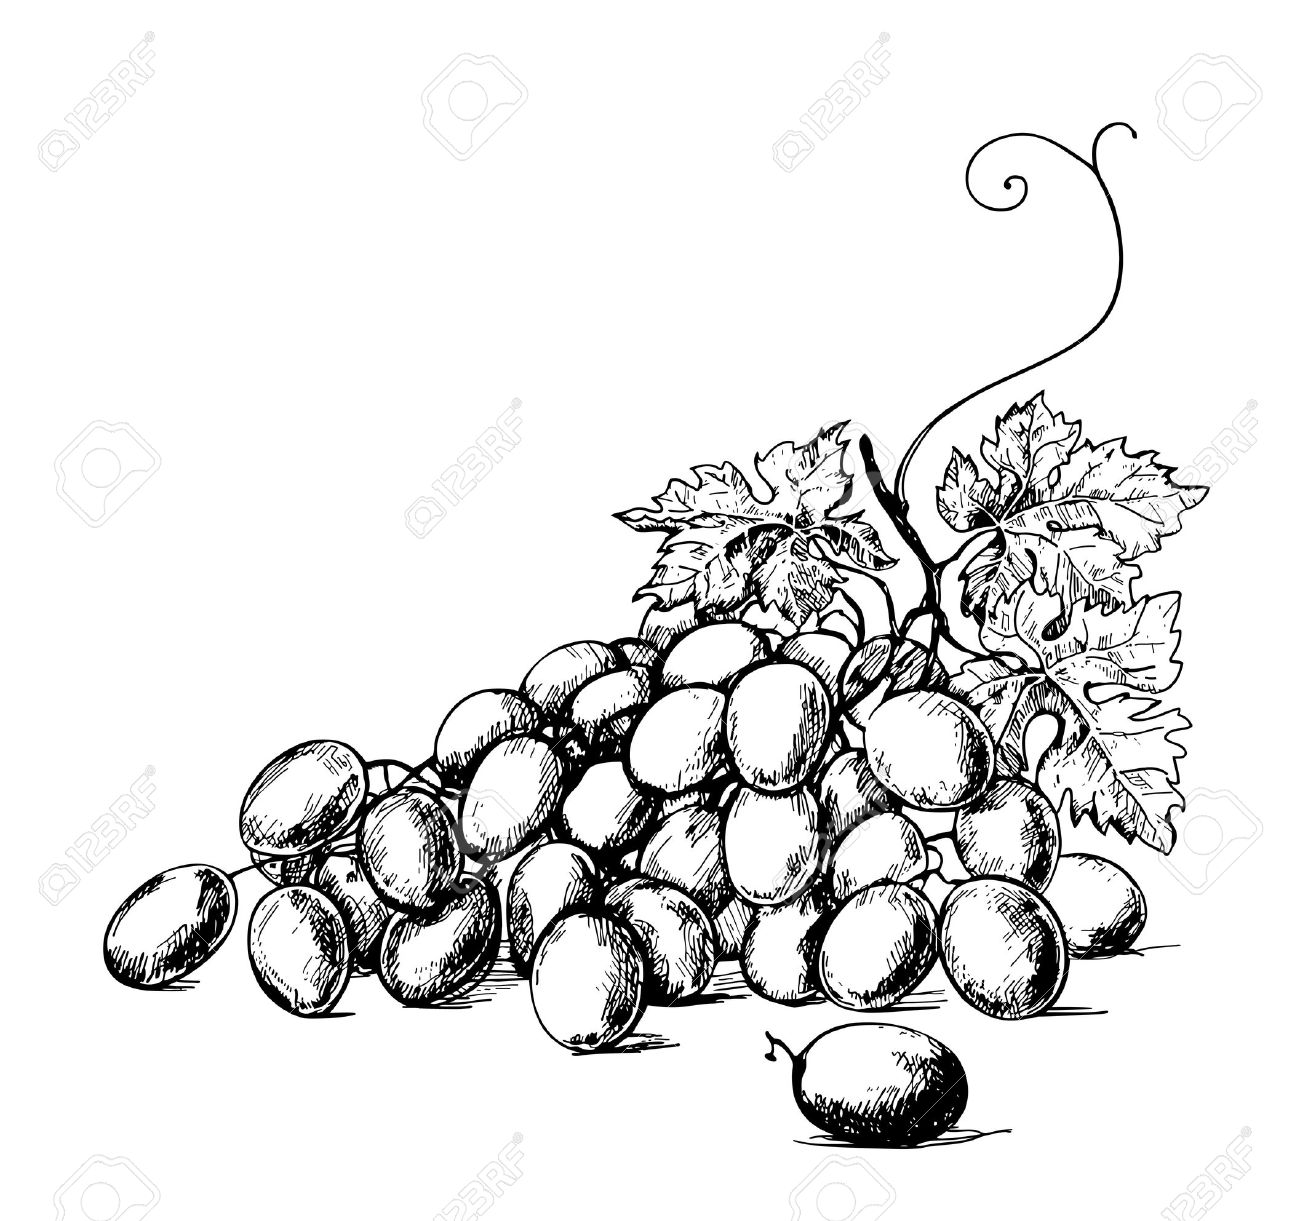 1300x1221 Sketch Illustration Of Bunch Of Grapes Royalty Free Cliparts